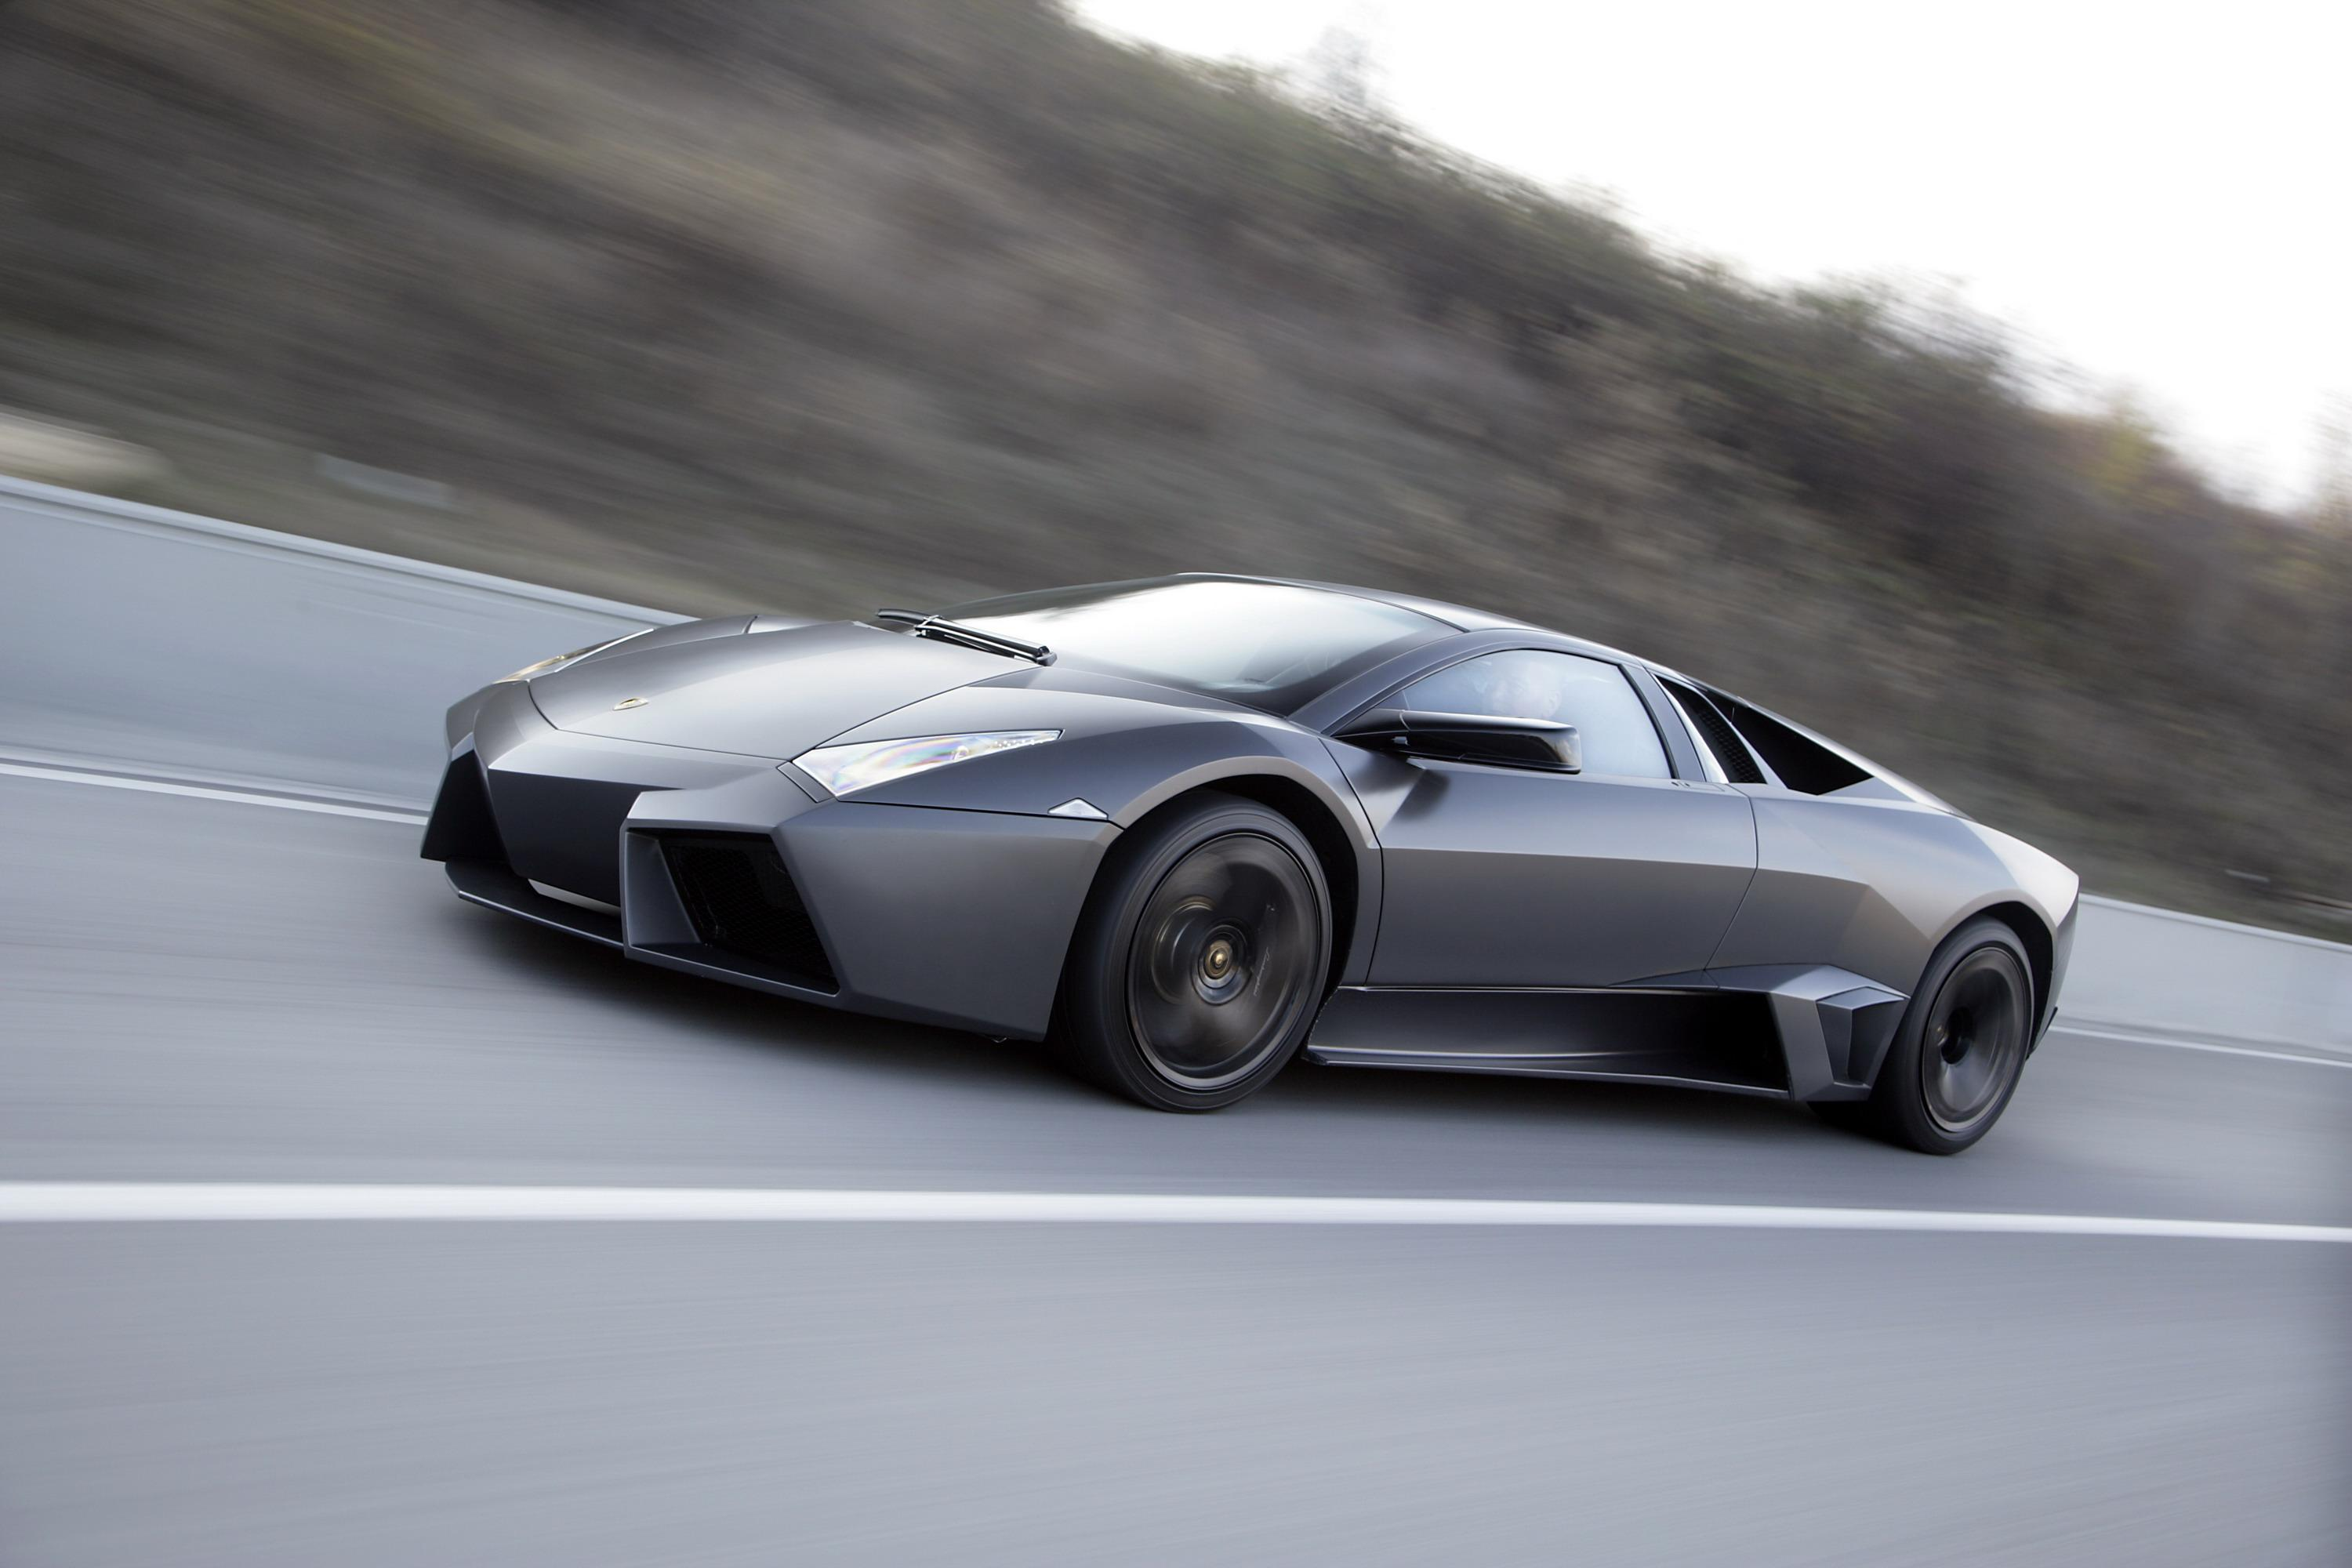 Lamborghini reventon top speed